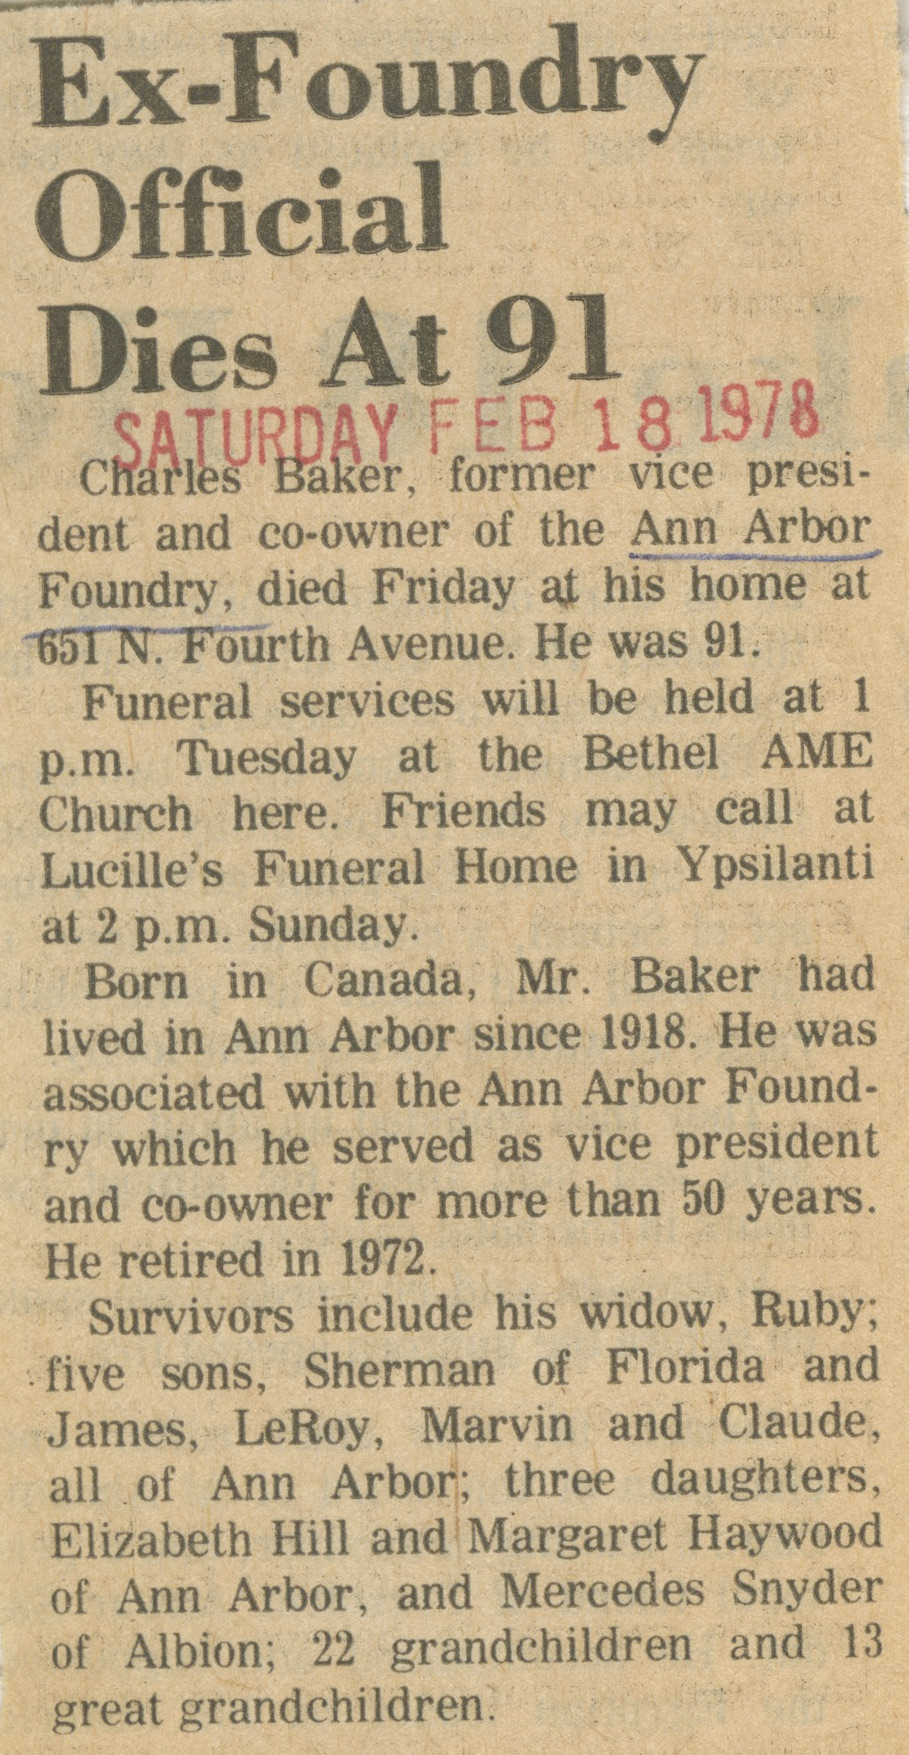 Ex-Foundry Official Dies At 91 image